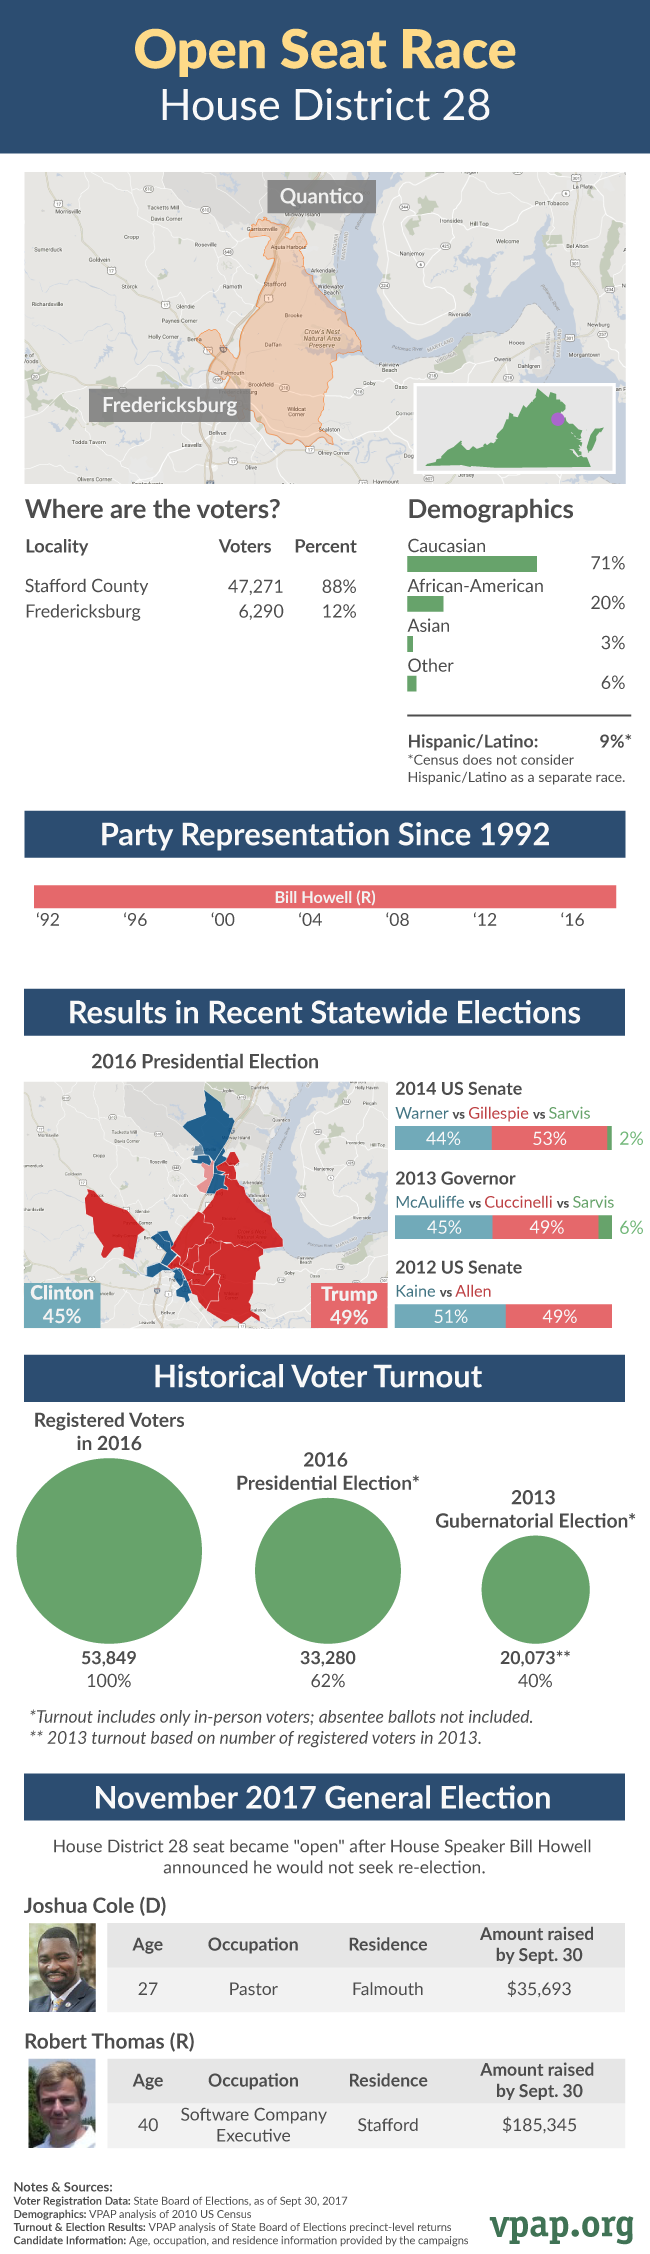 Open Seat Profile: House District 28